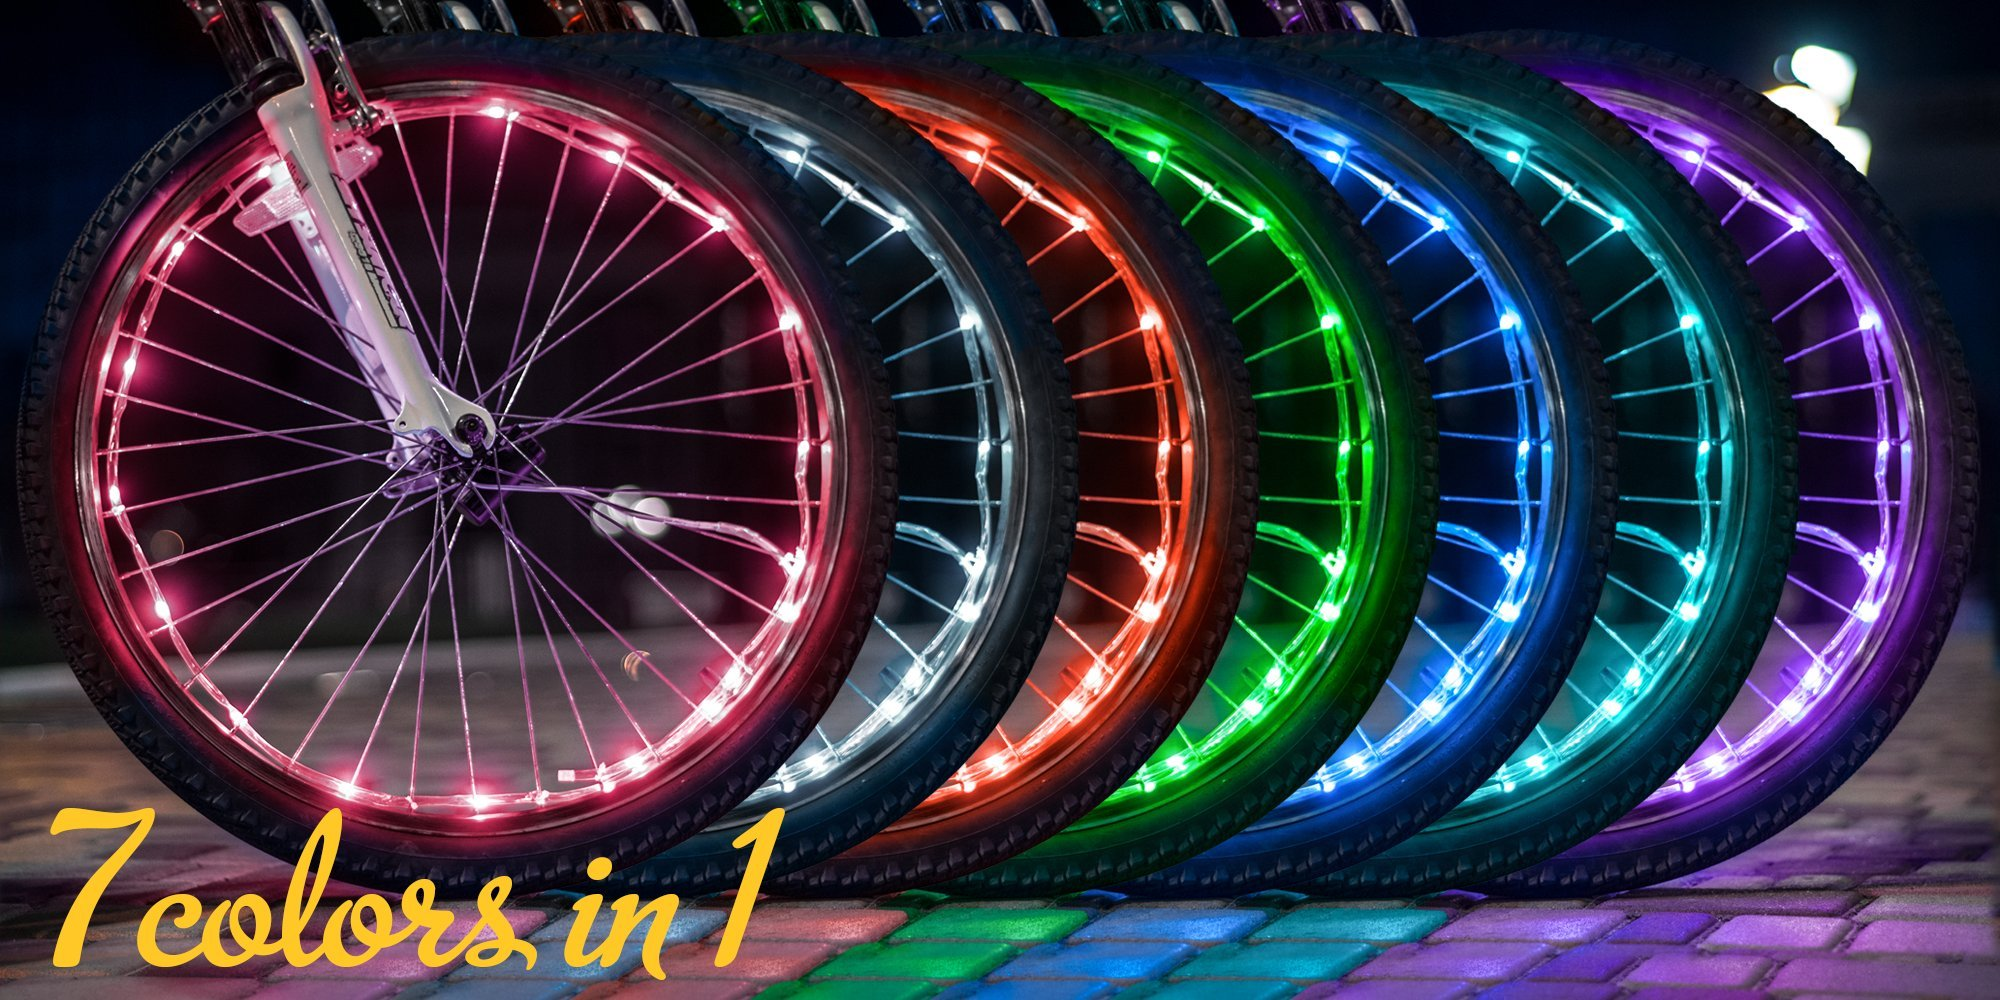 Bright Spokes Premium LED Bike Wheel Lights | 7 Colors in 1 | USB Rechargeable Battery | Strong Silicone Tube Cover | 18 Modes | Best Gift for all ages | 5, 6, 7, 8, 9 + year old boy gifts (1 Tire) by Gear Nation (Image #3)